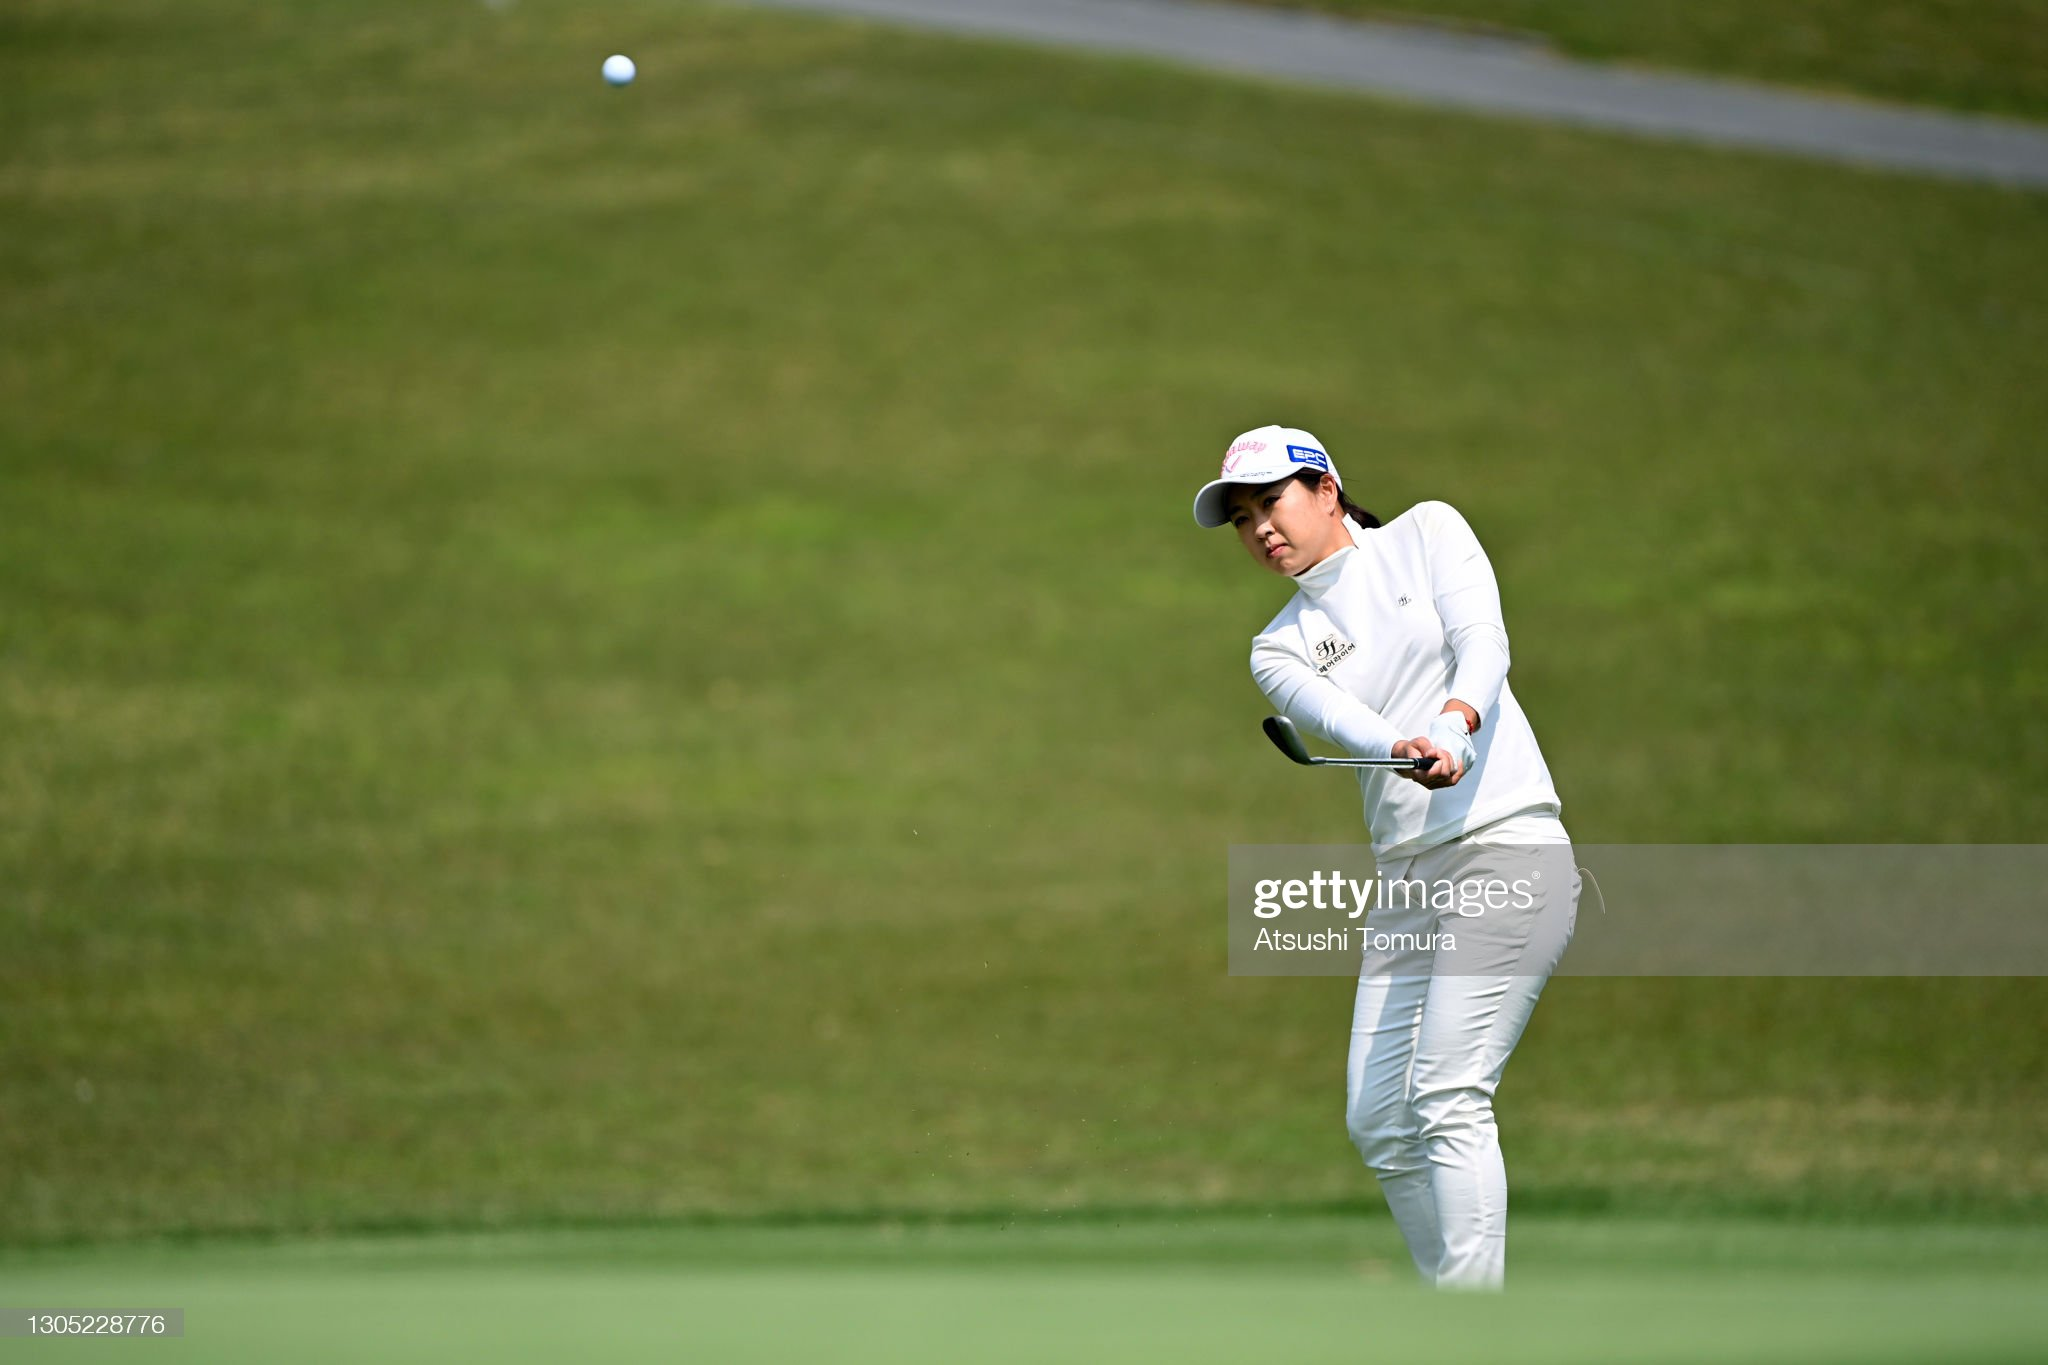 https://media.gettyimages.com/photos/solar-lee-of-south-korea-chips-onto-the-13th-green-during-the-first-picture-id1305228776?s=2048x2048